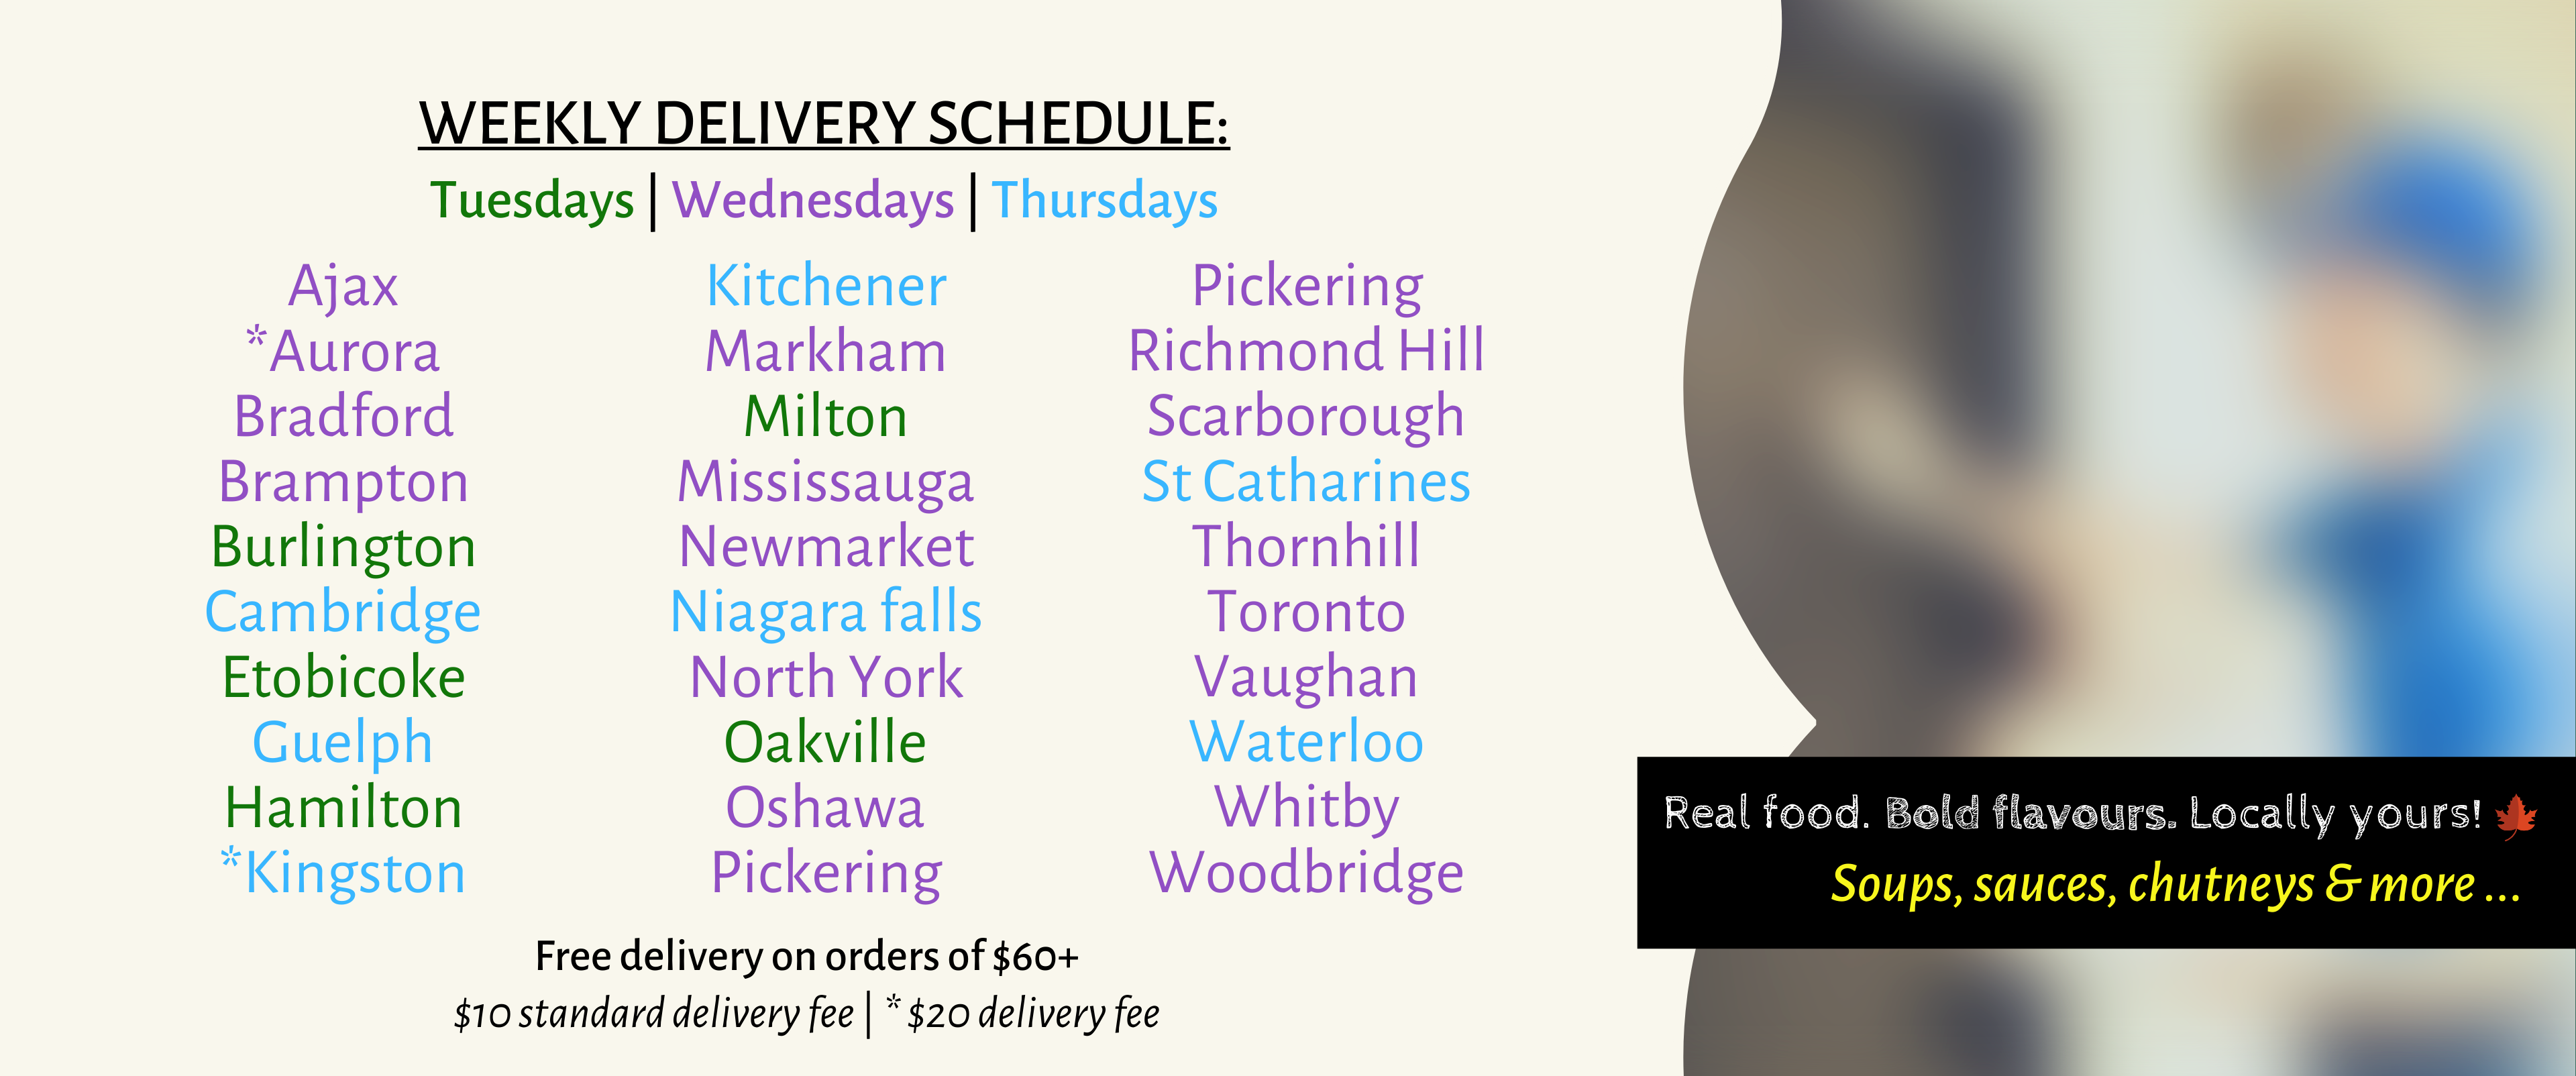 Weekly Delivery Schedule